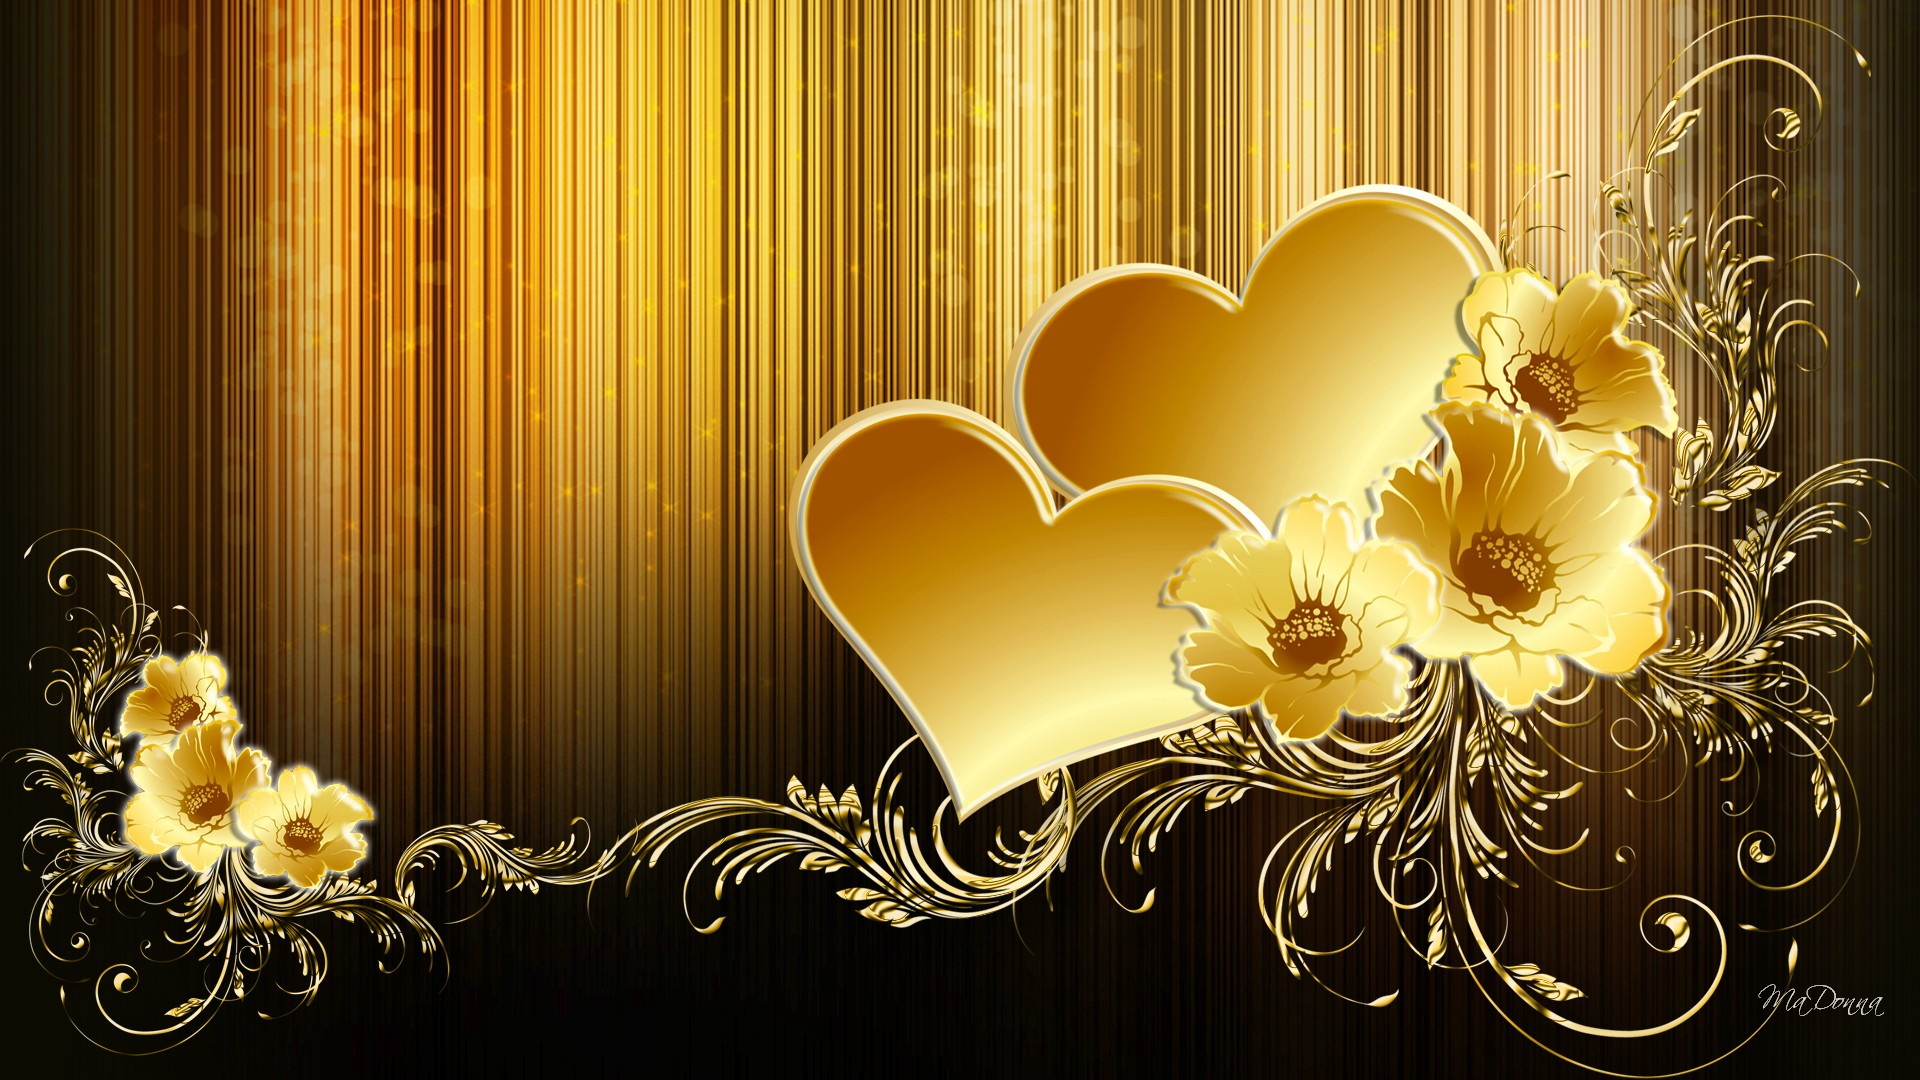 Cool s hd wallpaper 1920x1080 35314 for Gold 3d wallpaper